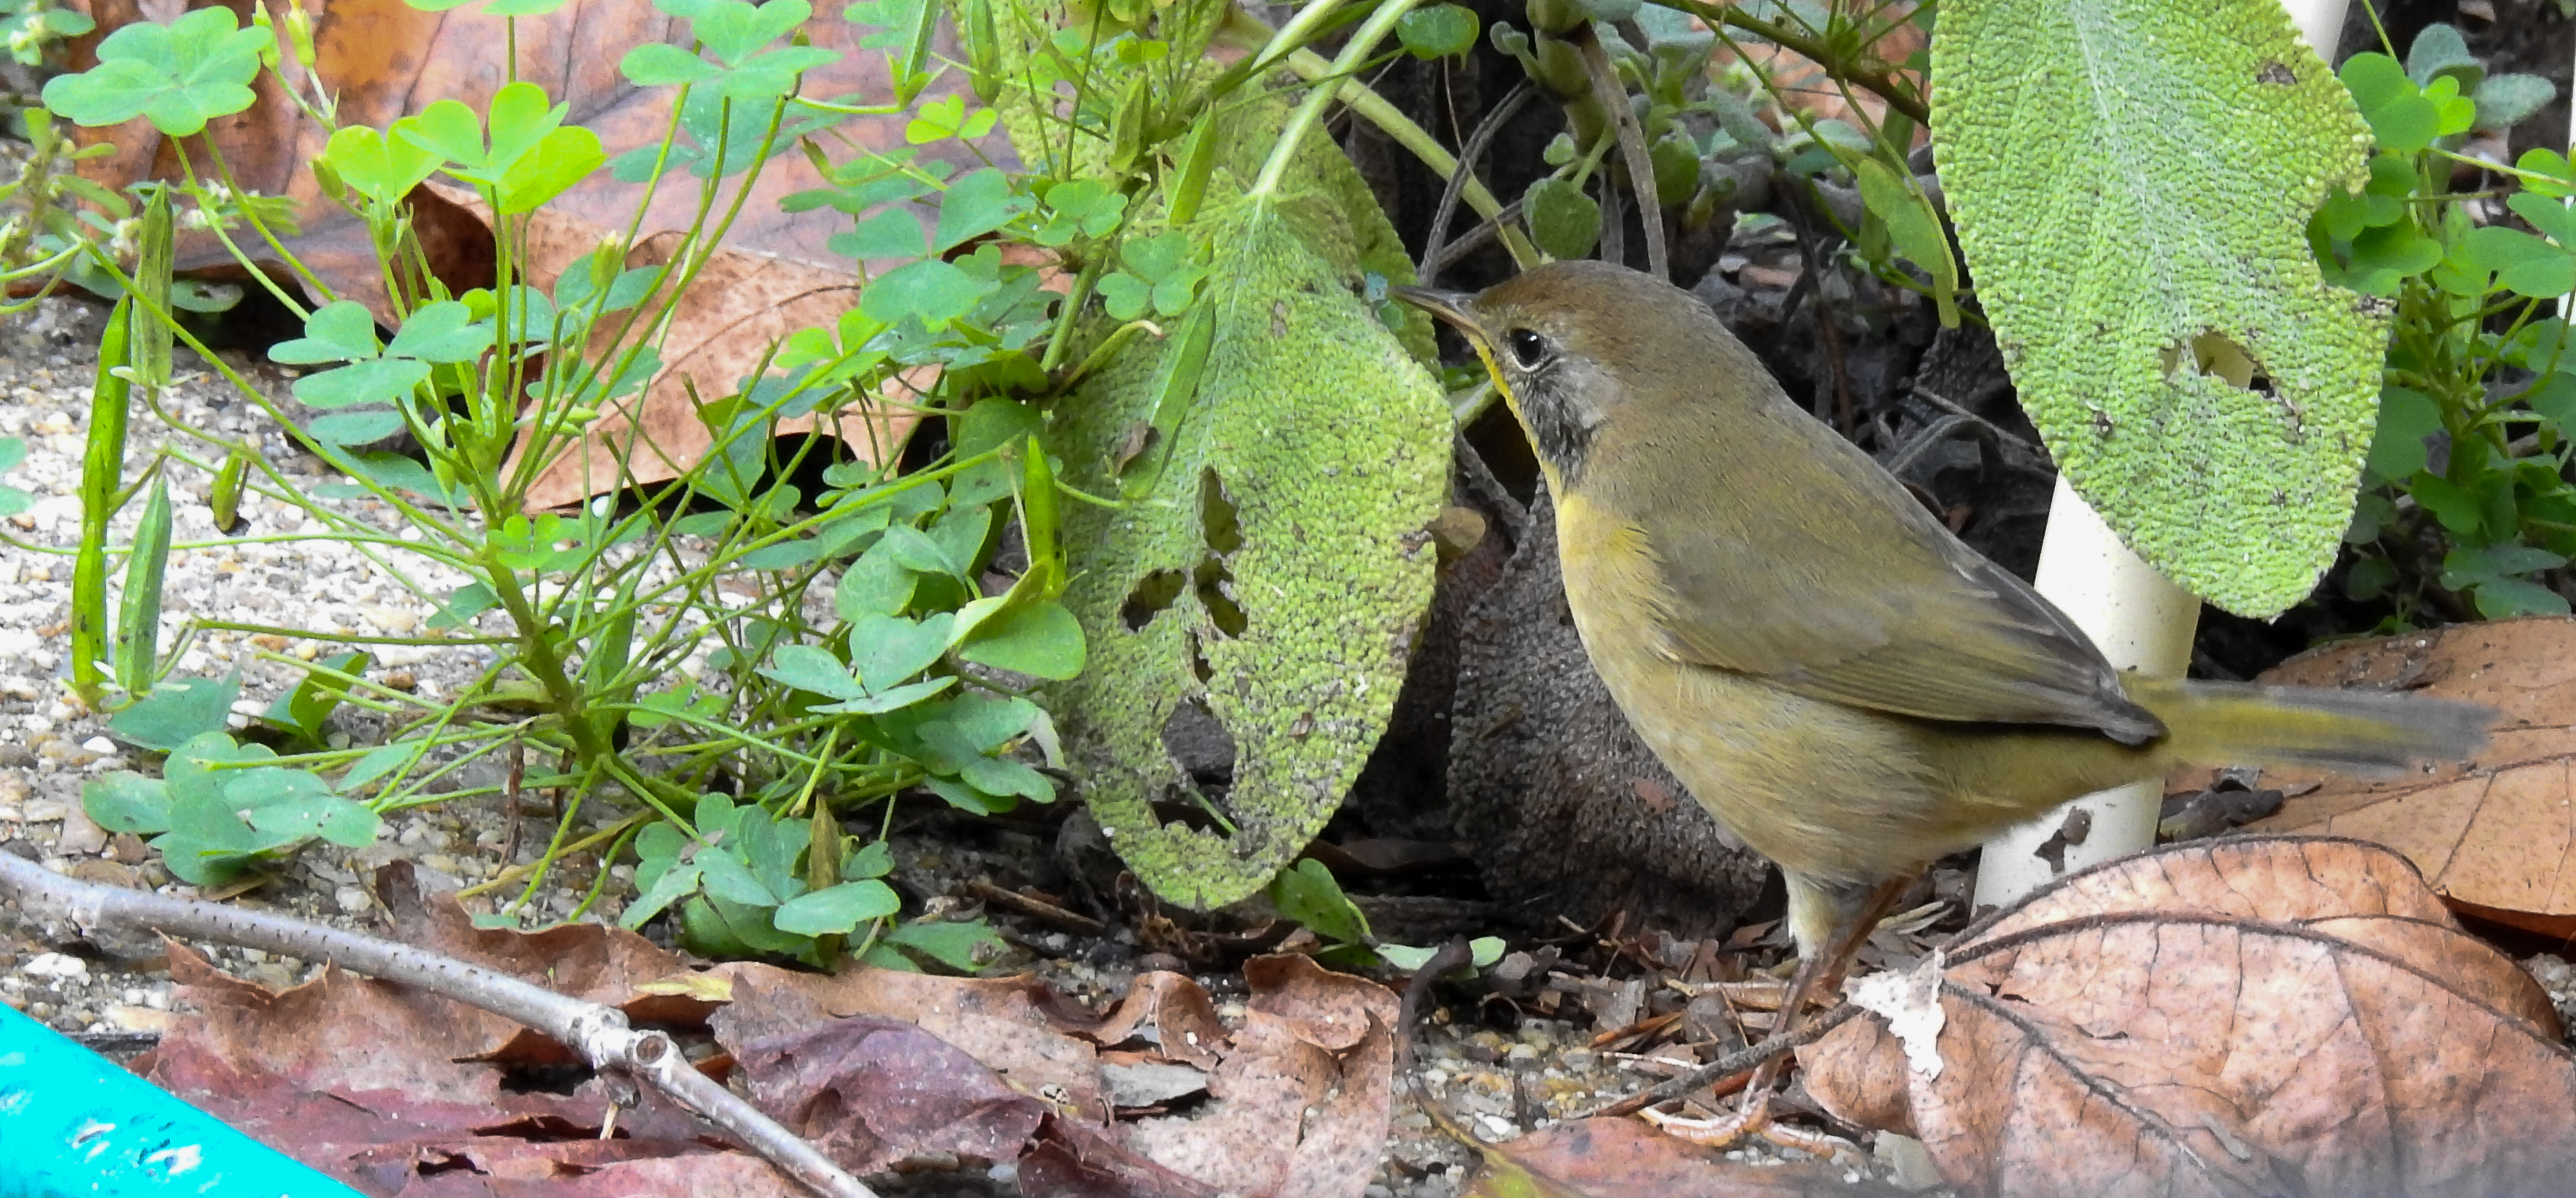 Juvenile Male Common Yellowthroat hunts bugs in herb garden